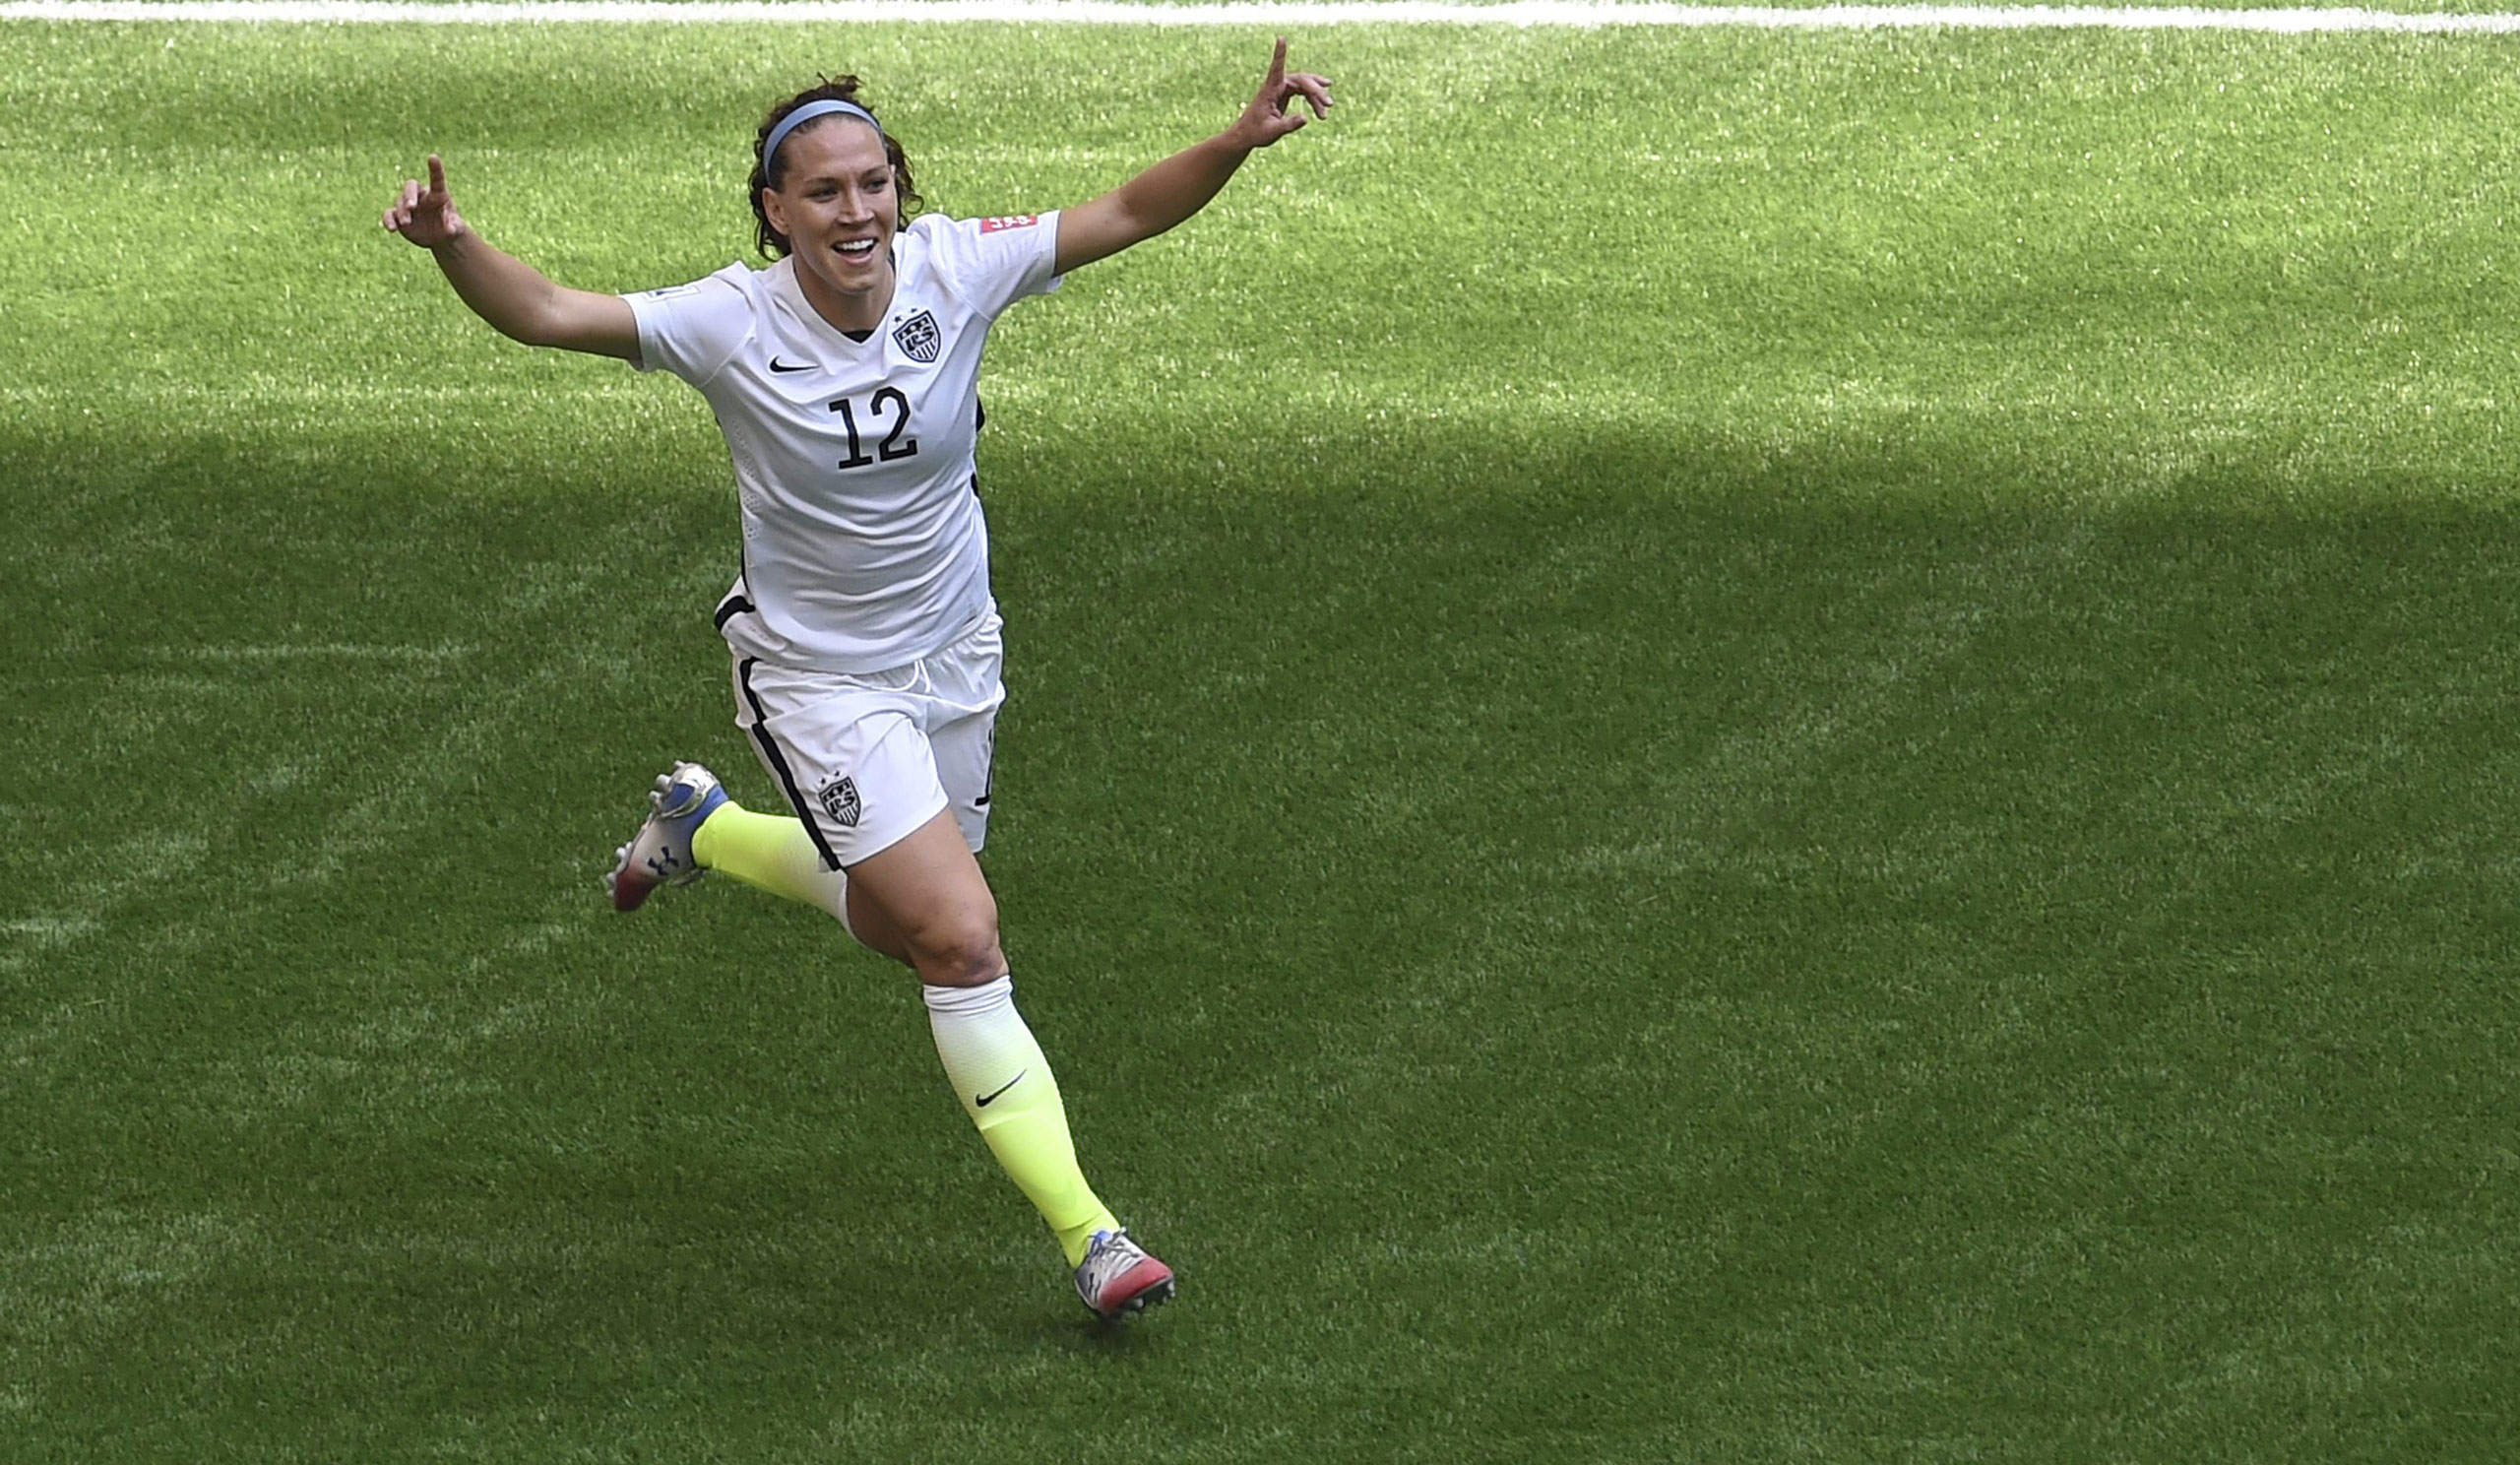 Lauren Holiday celebrates her goal against Japan during the final match of the 2015 FIFA Women's World Cup at the BC Place Stadium in Vancouver on July 5, 2015.